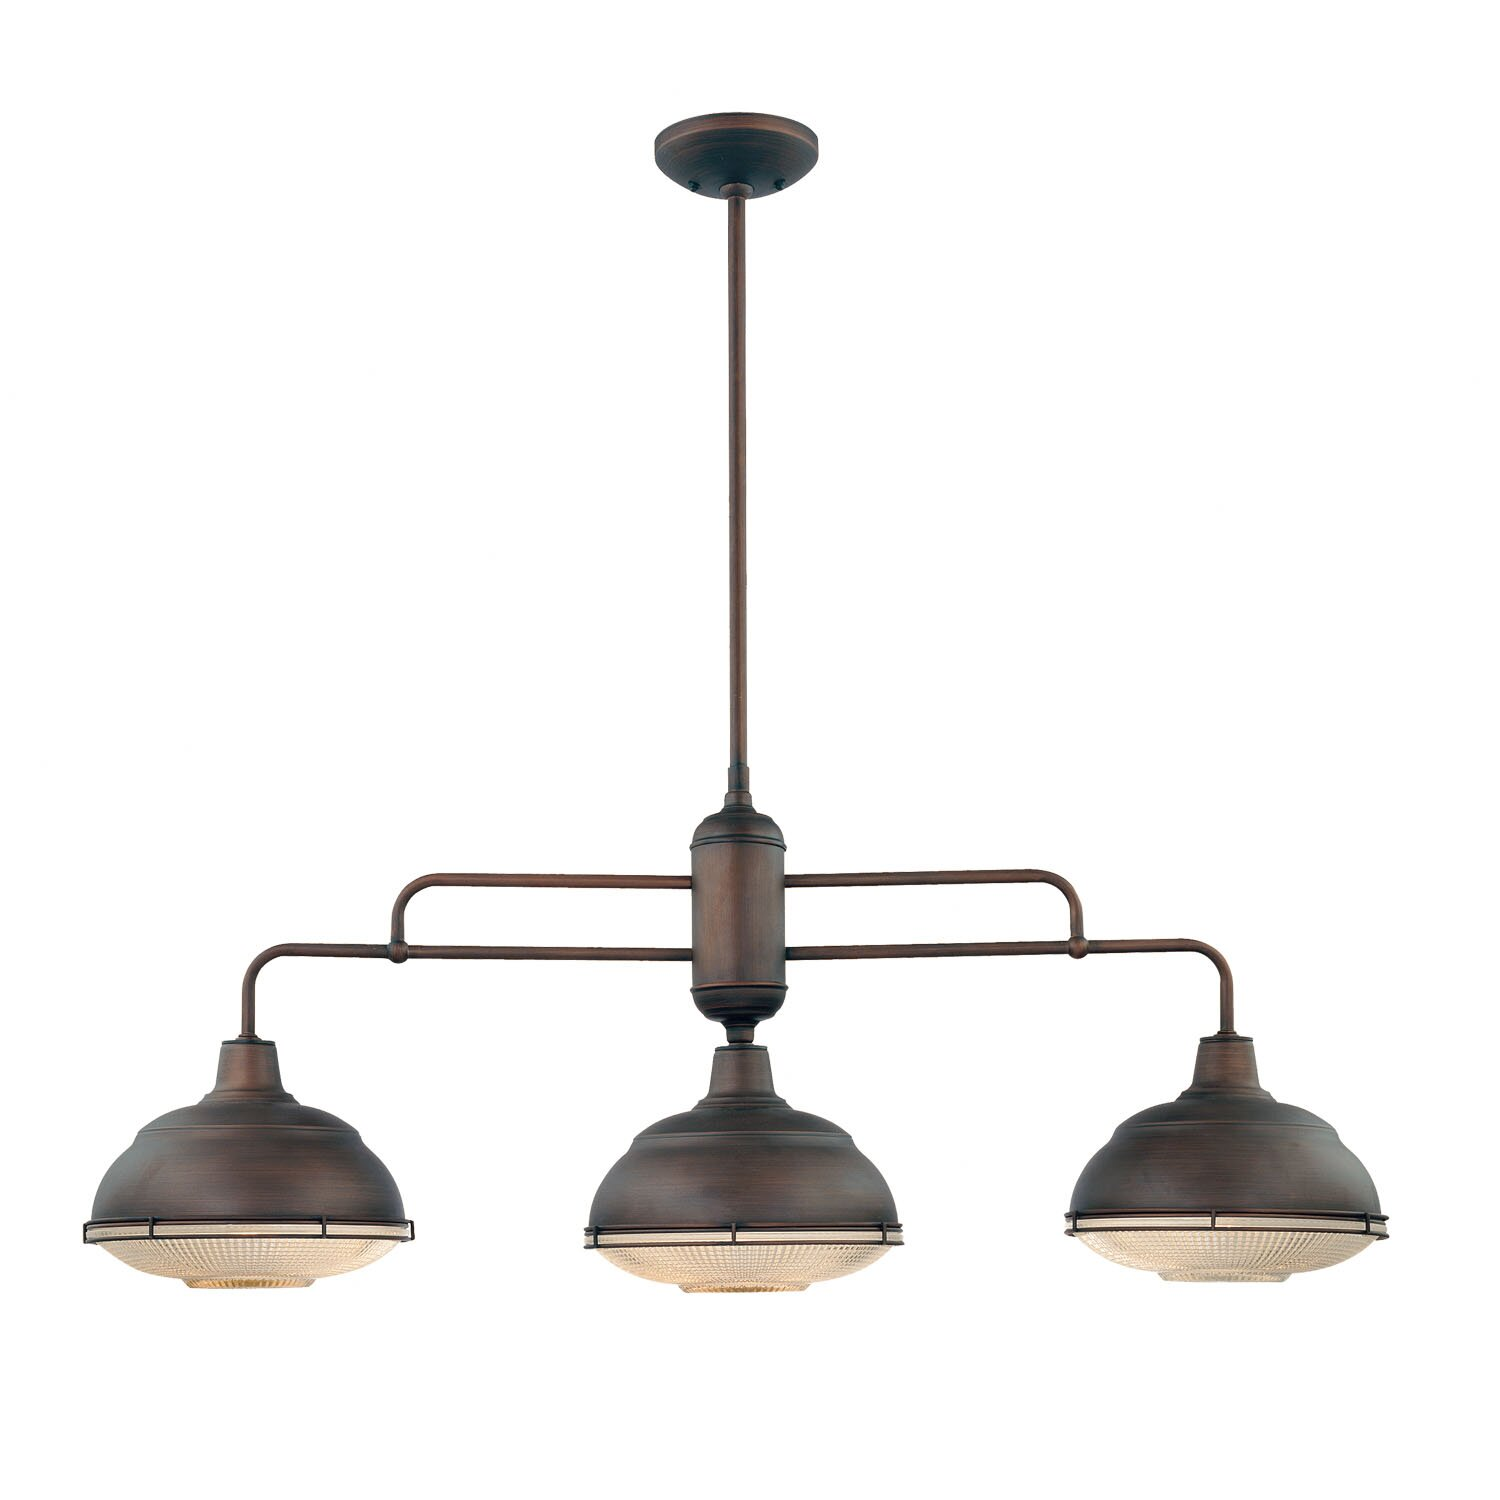 Neo Industrial Kitchen Lighting